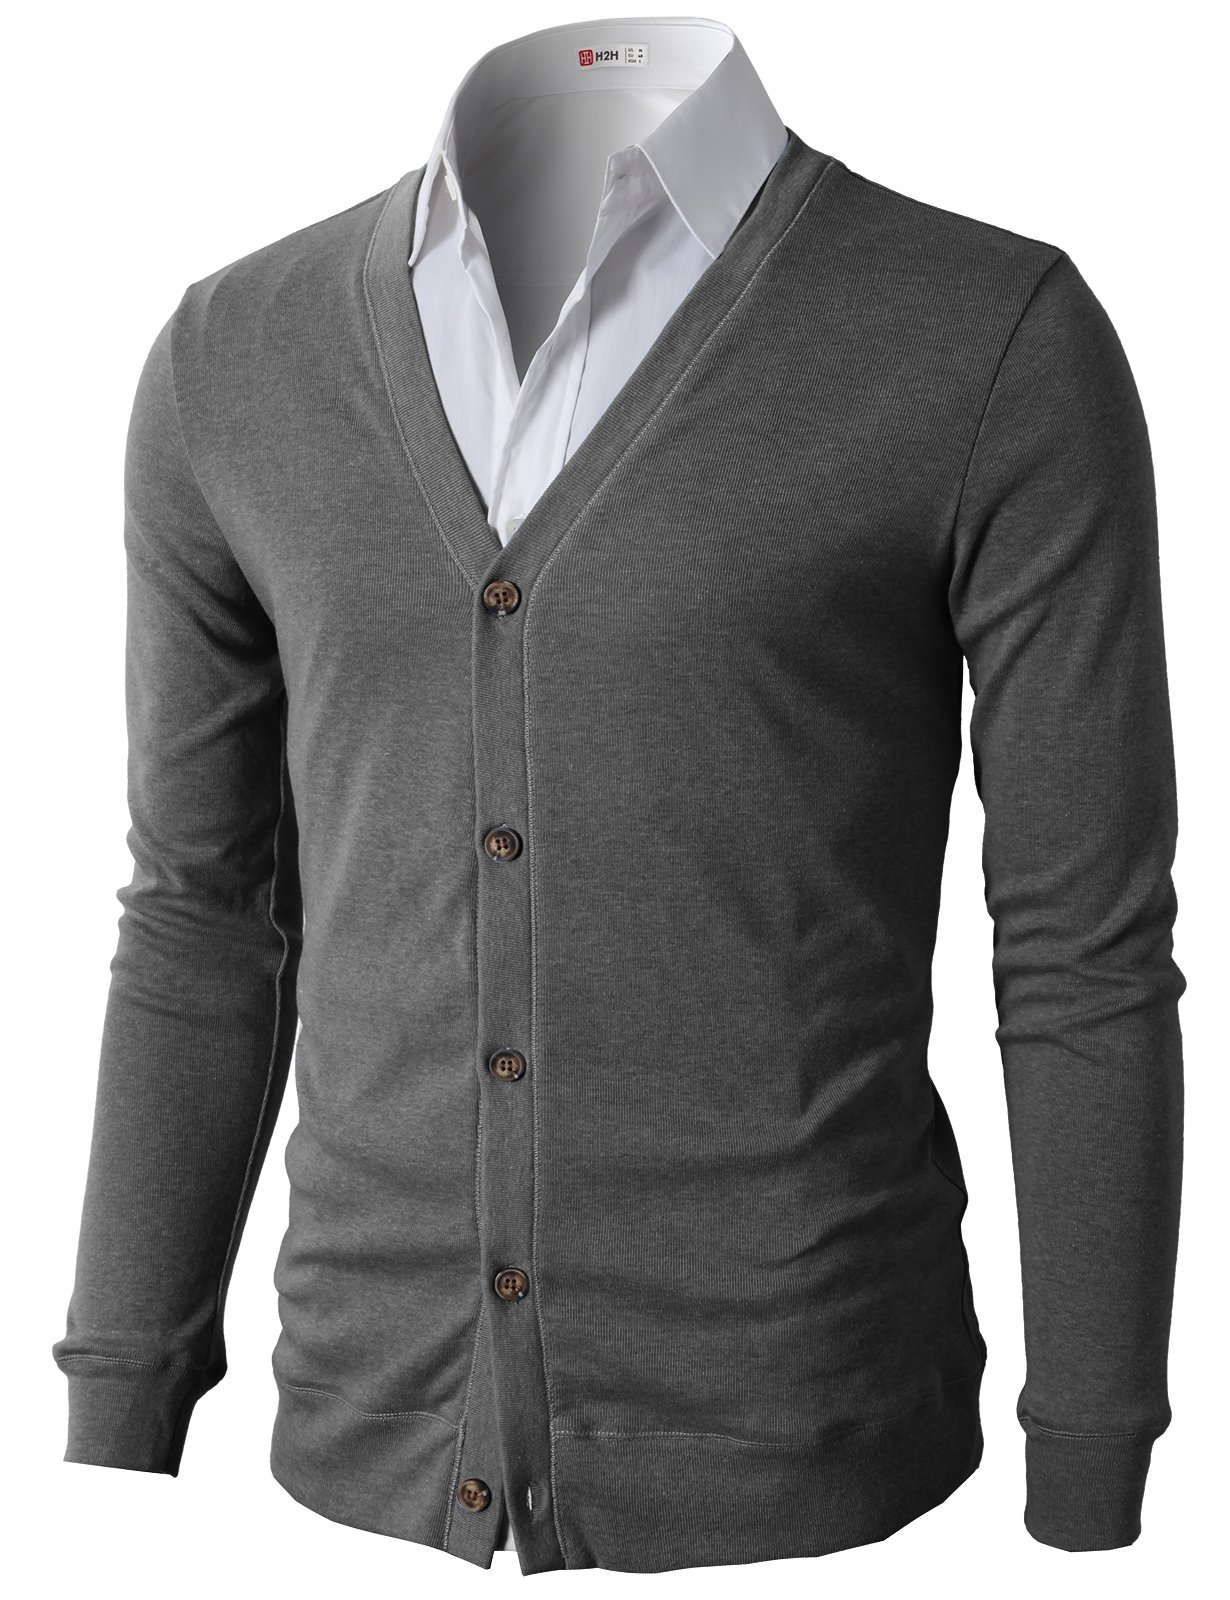 H2H Men's Basic Solid Button Cardigan Gray US M/Asia L (CMOCAL012)